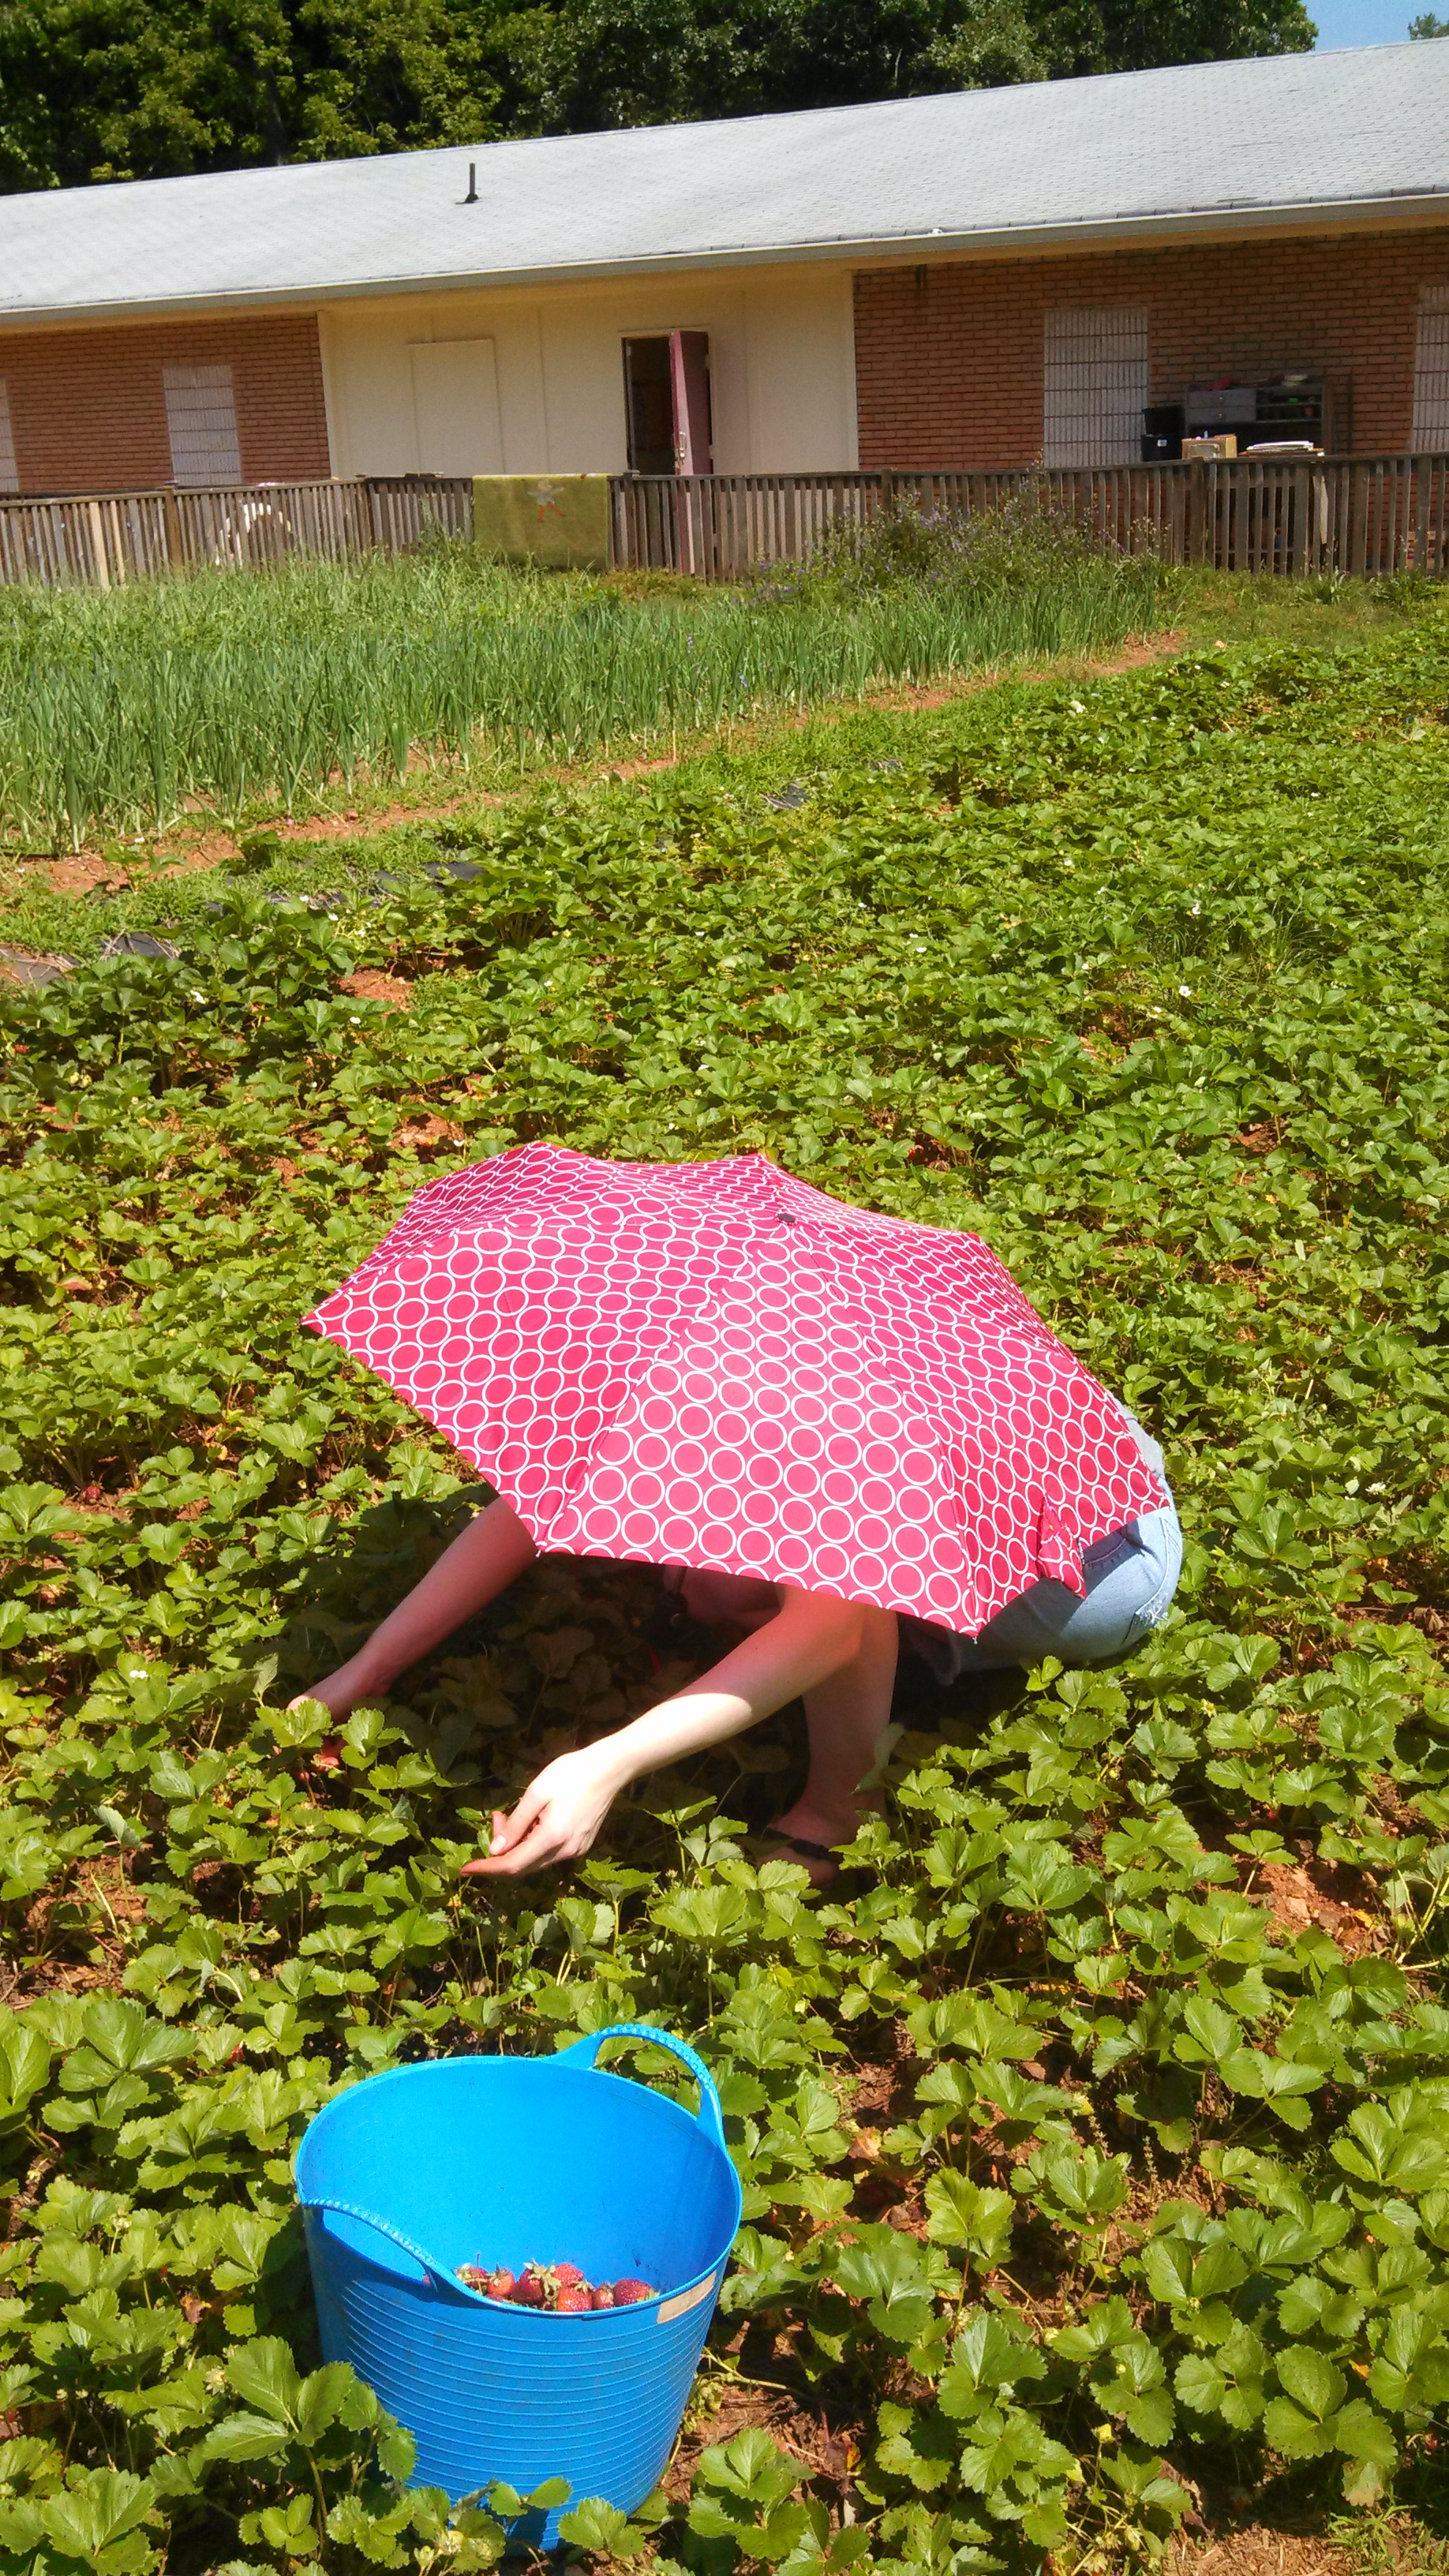 Umbrella in the strawberry patch